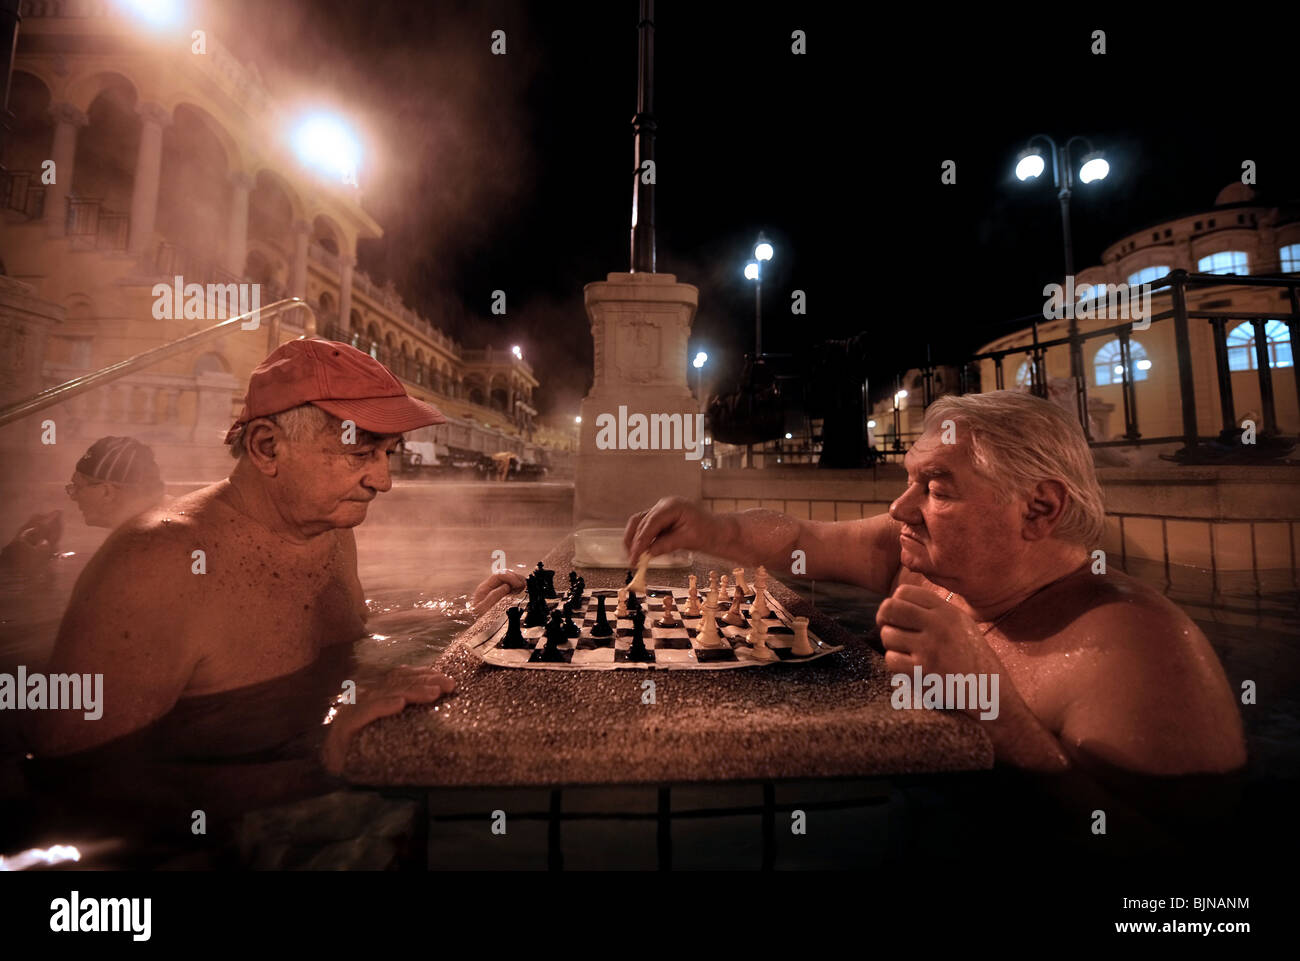 Men playing chess in the Szechenyi Baths on a cold winter night in Budapest, Hungary - Stock Image